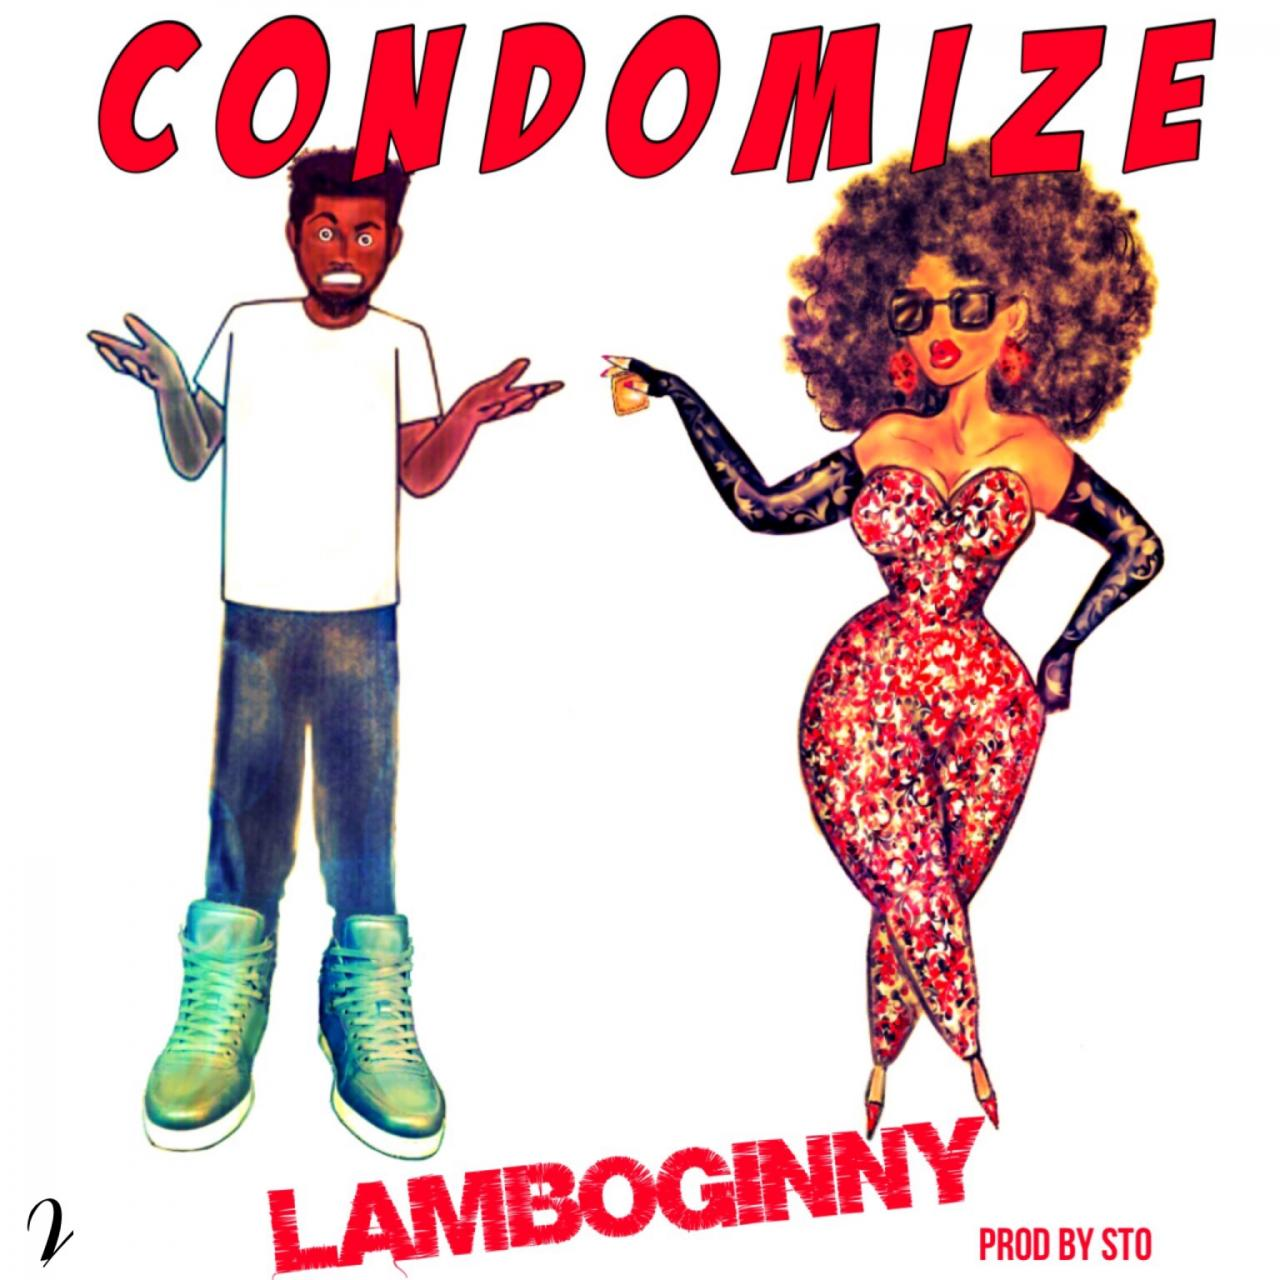 Lamboginny – Condomize